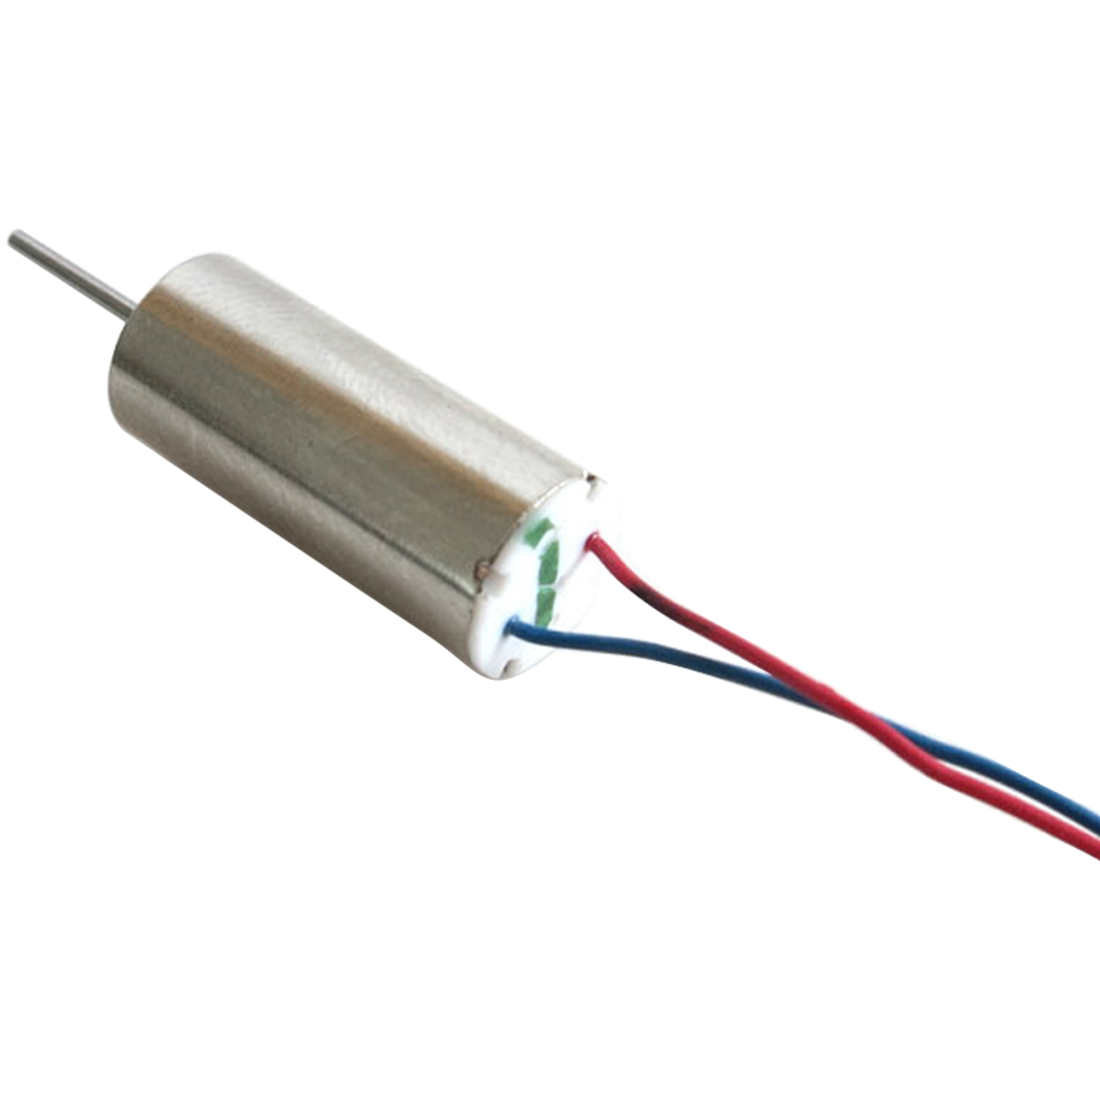 Reduction Kits Coreless Motor 716 Gear Box 3.7V 45000RPM For Remote Control